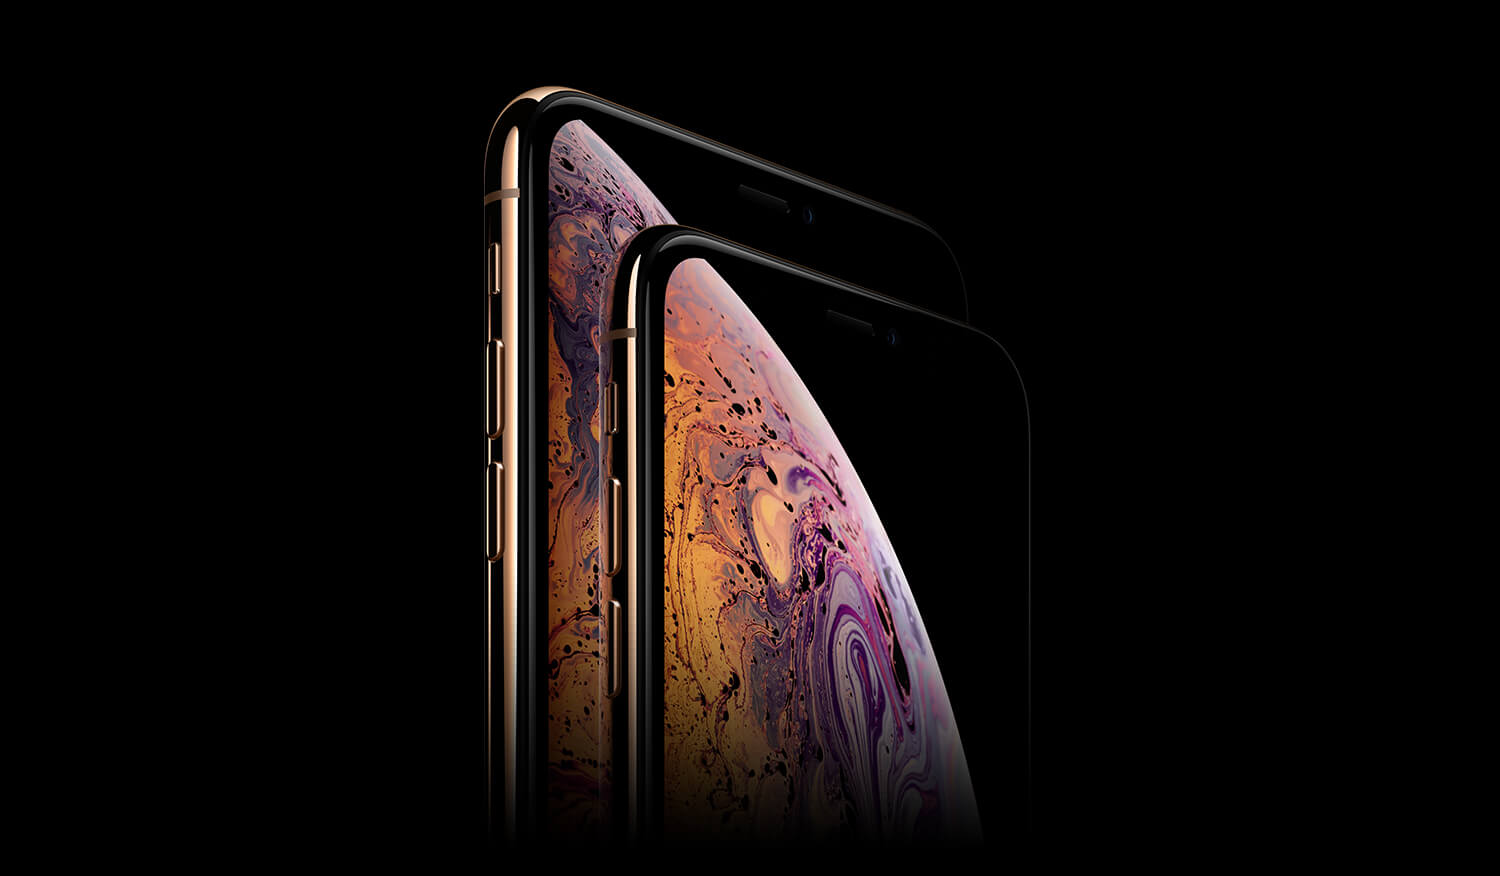 iPhone X and iPhone Xs Max front screen display